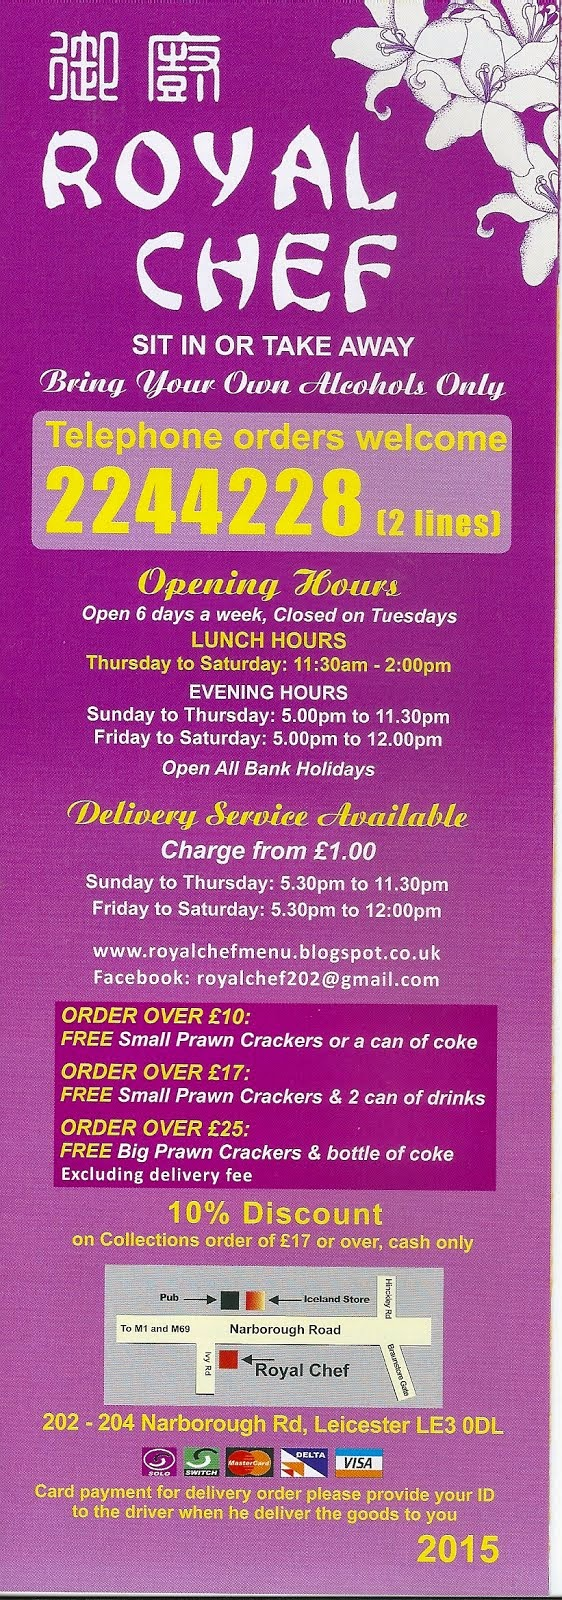 Royal chef Takeaways and restaurants...